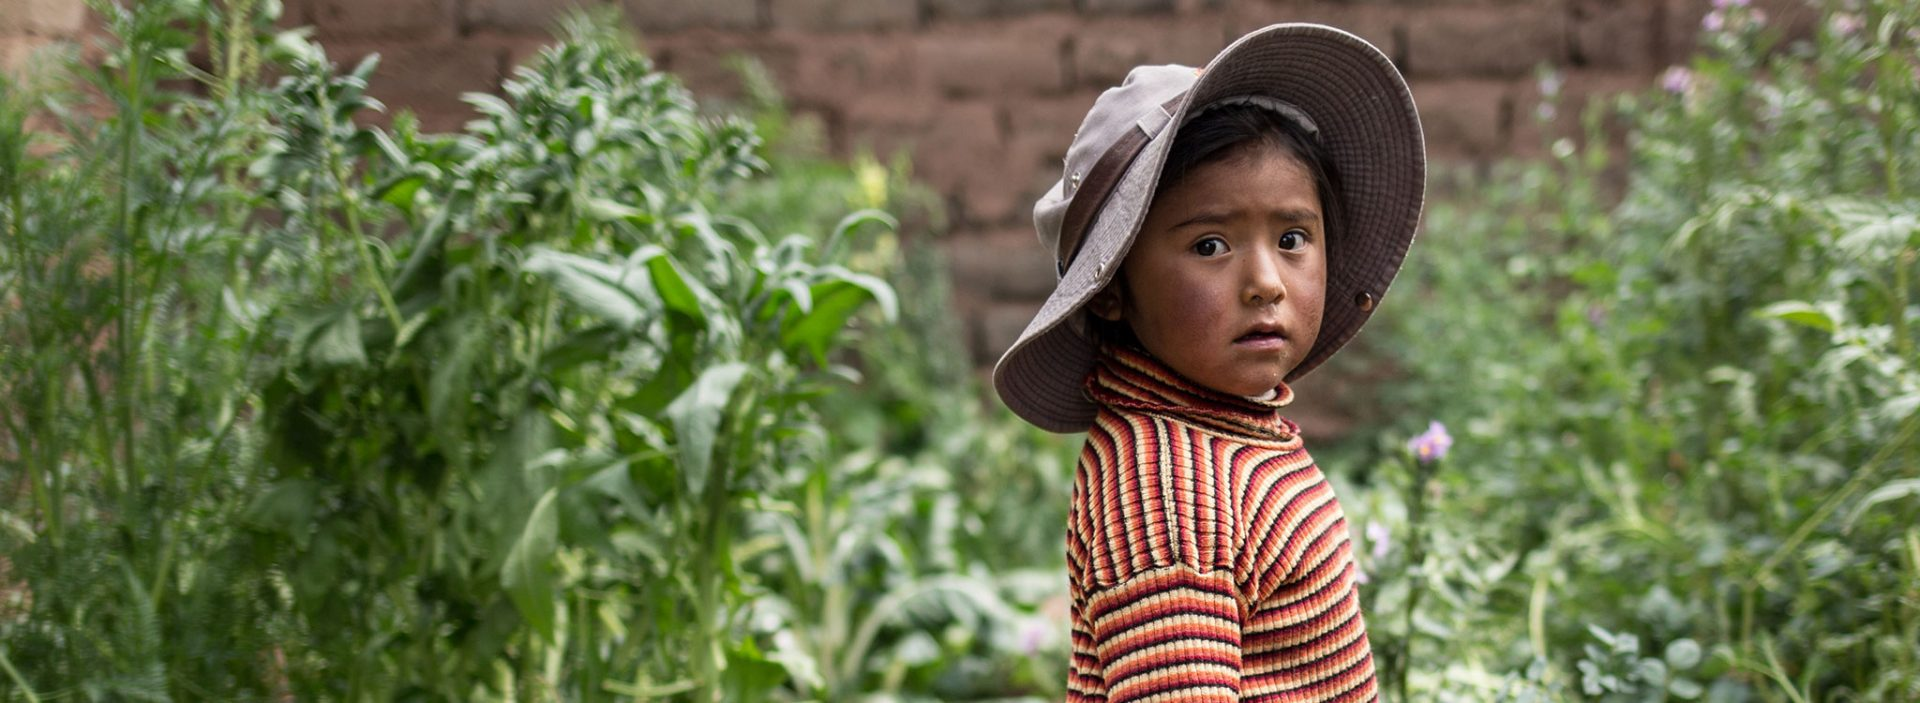 A child in a garden project supported by Action Against Hunger in Puno, Peru.